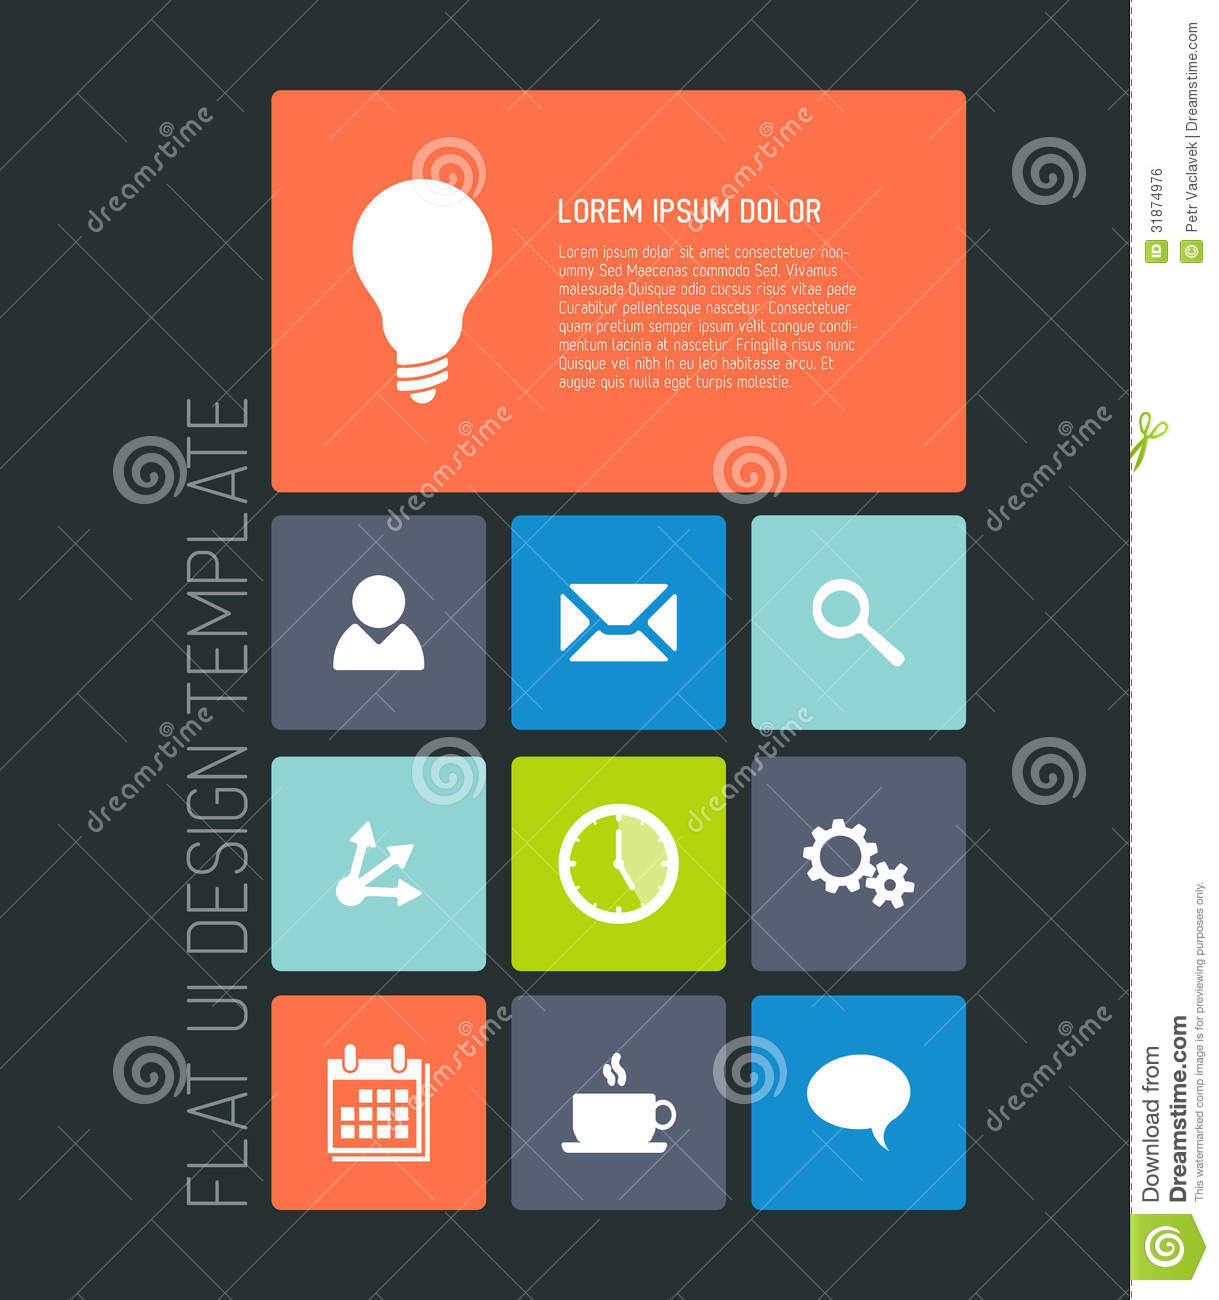 Modern mobile phone flat user interface stock vector for Mobel design